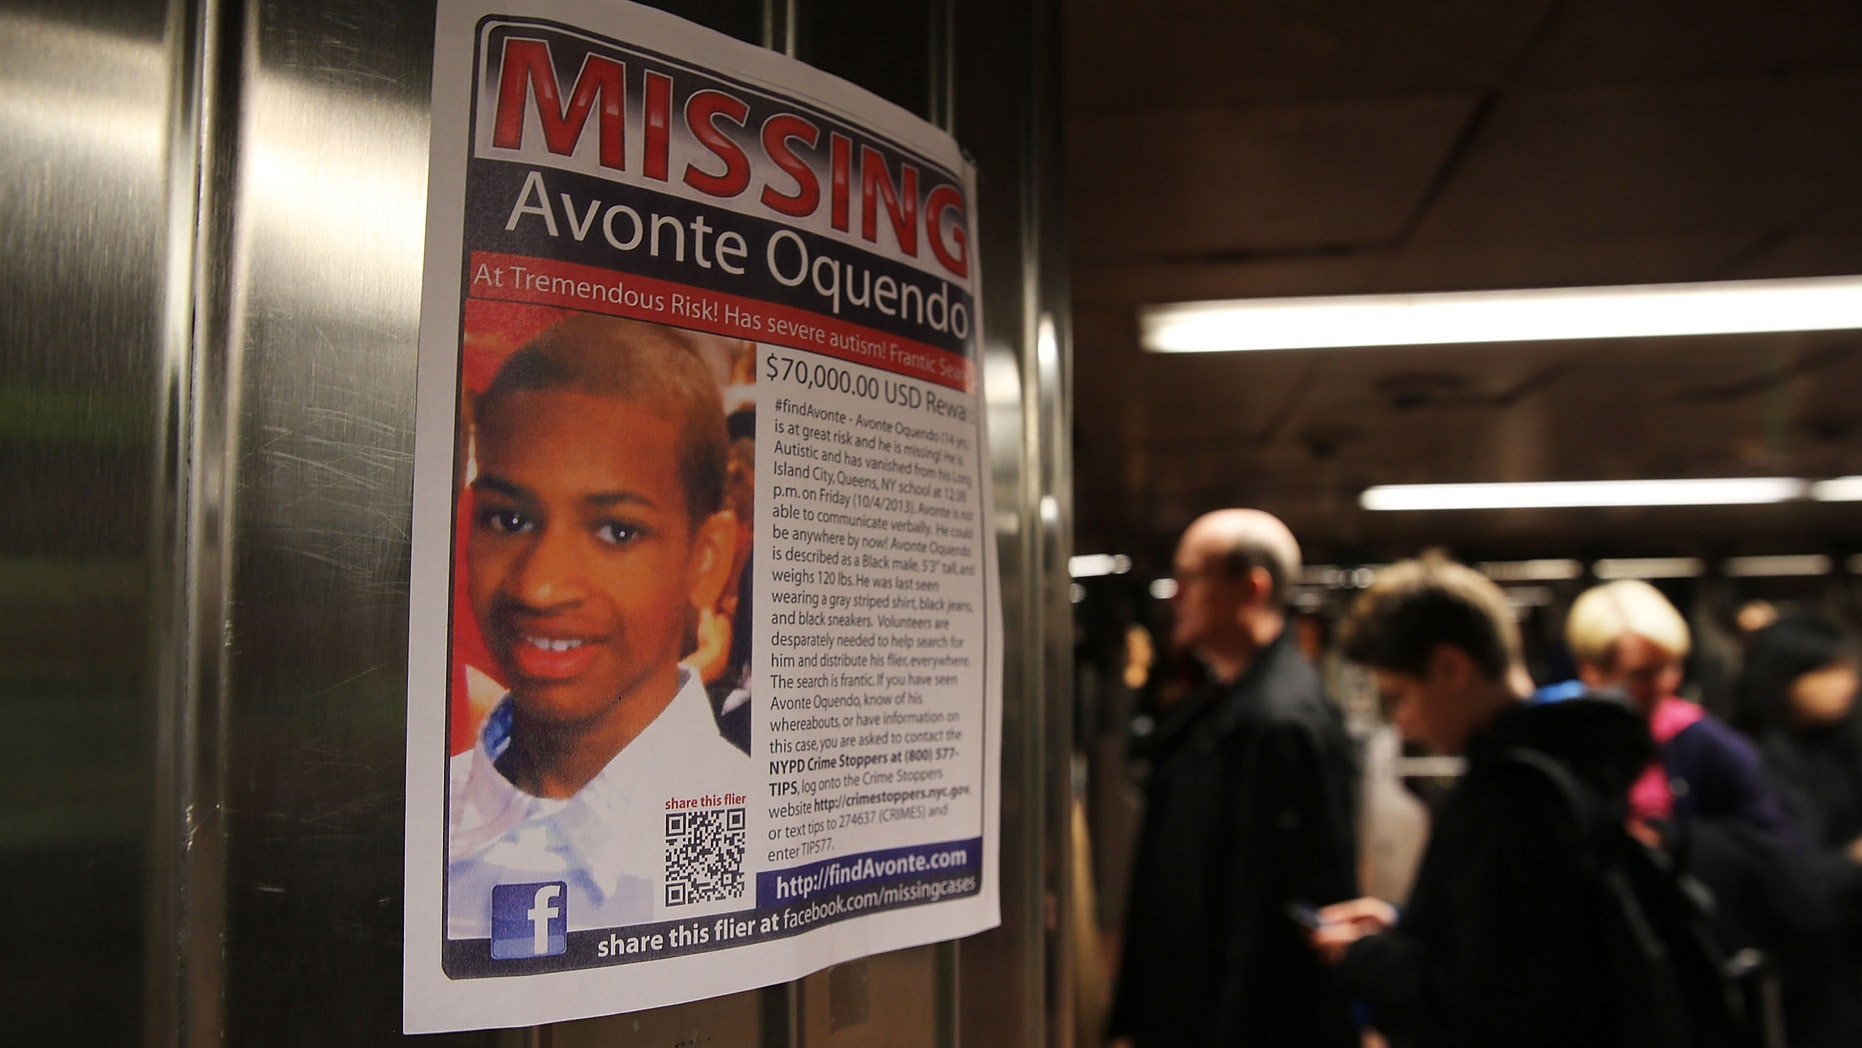 NEW YORK, NY - OCTOBER 21:  A poster for a missing autistic 14-year-old named Avonte Oquendo hangs in subway station on October 21, 2013 in New York City. Hundreds of Police, volunteers, friends and family are searching for Avonte who walked out of the Center Boulevard School in Long Island City, Queens on October 4, 2013 and has not been seen since. Family members say that the teen has a fondness for trains and have focused their search along rail yards and in subway stations.  (Photo by Spencer Platt/Getty Images)